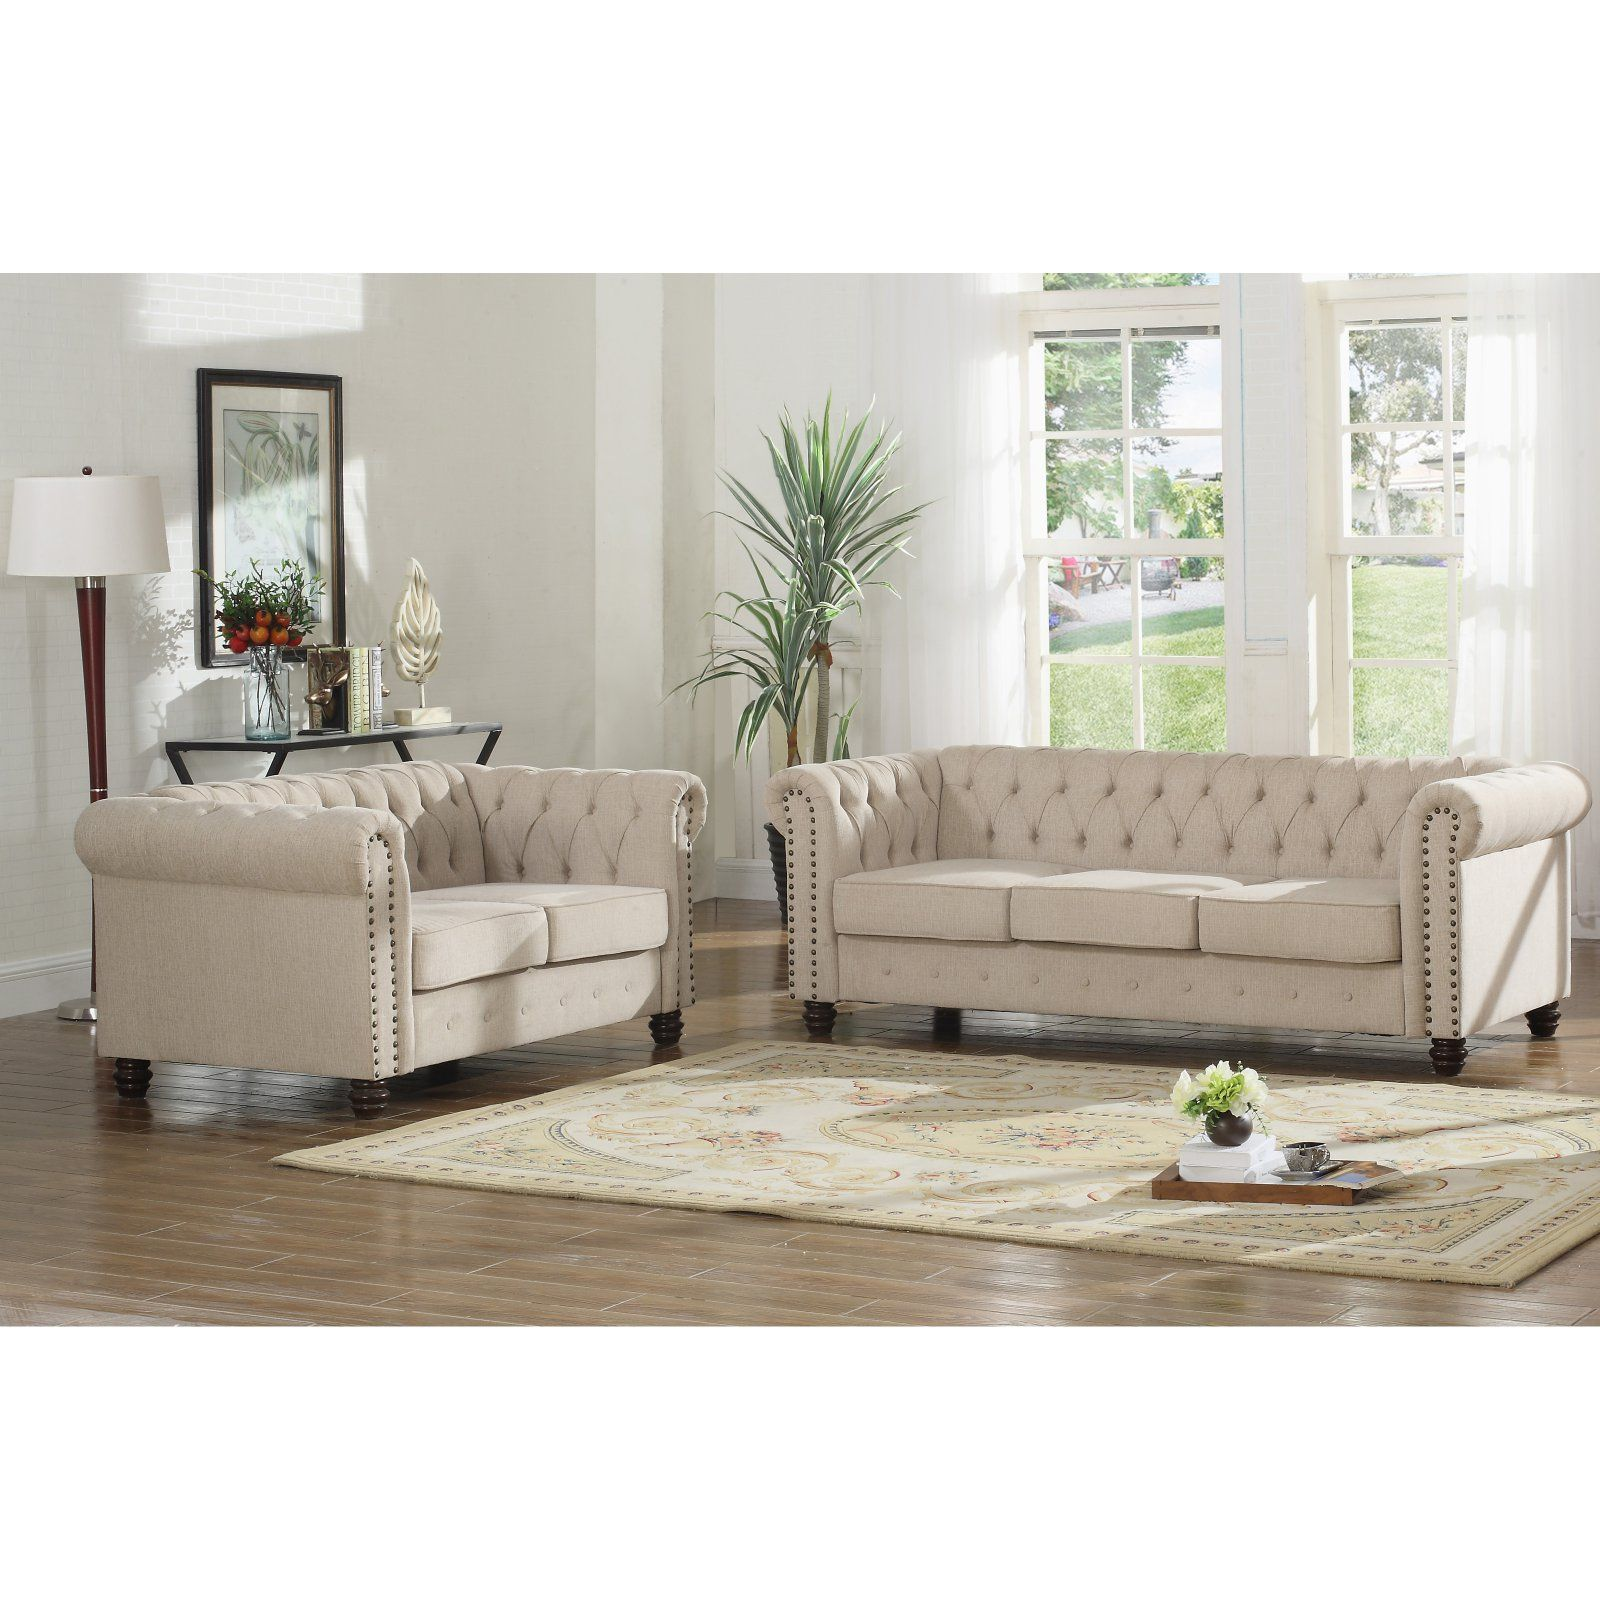 Cheap Living Room Furniture Stores: Best Master Furniture Venice 2 Piece Upholstered Sofa Set